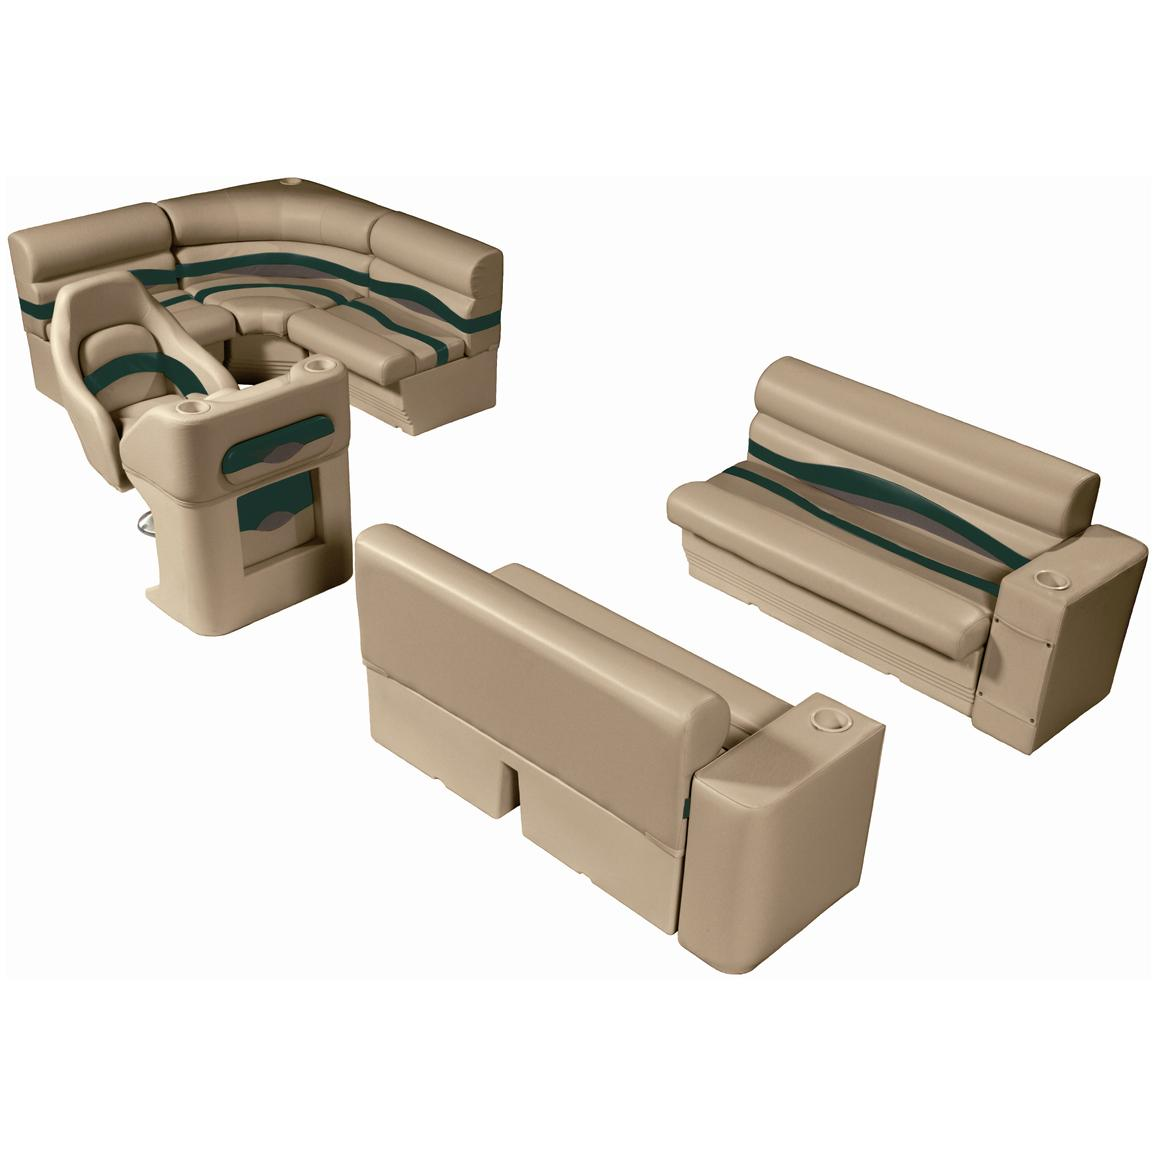 Wise® Premier Seat Group for 8' Rear Entry Pontoons, Color F - Mocha Java Punch / Evergreen / Rock Salt